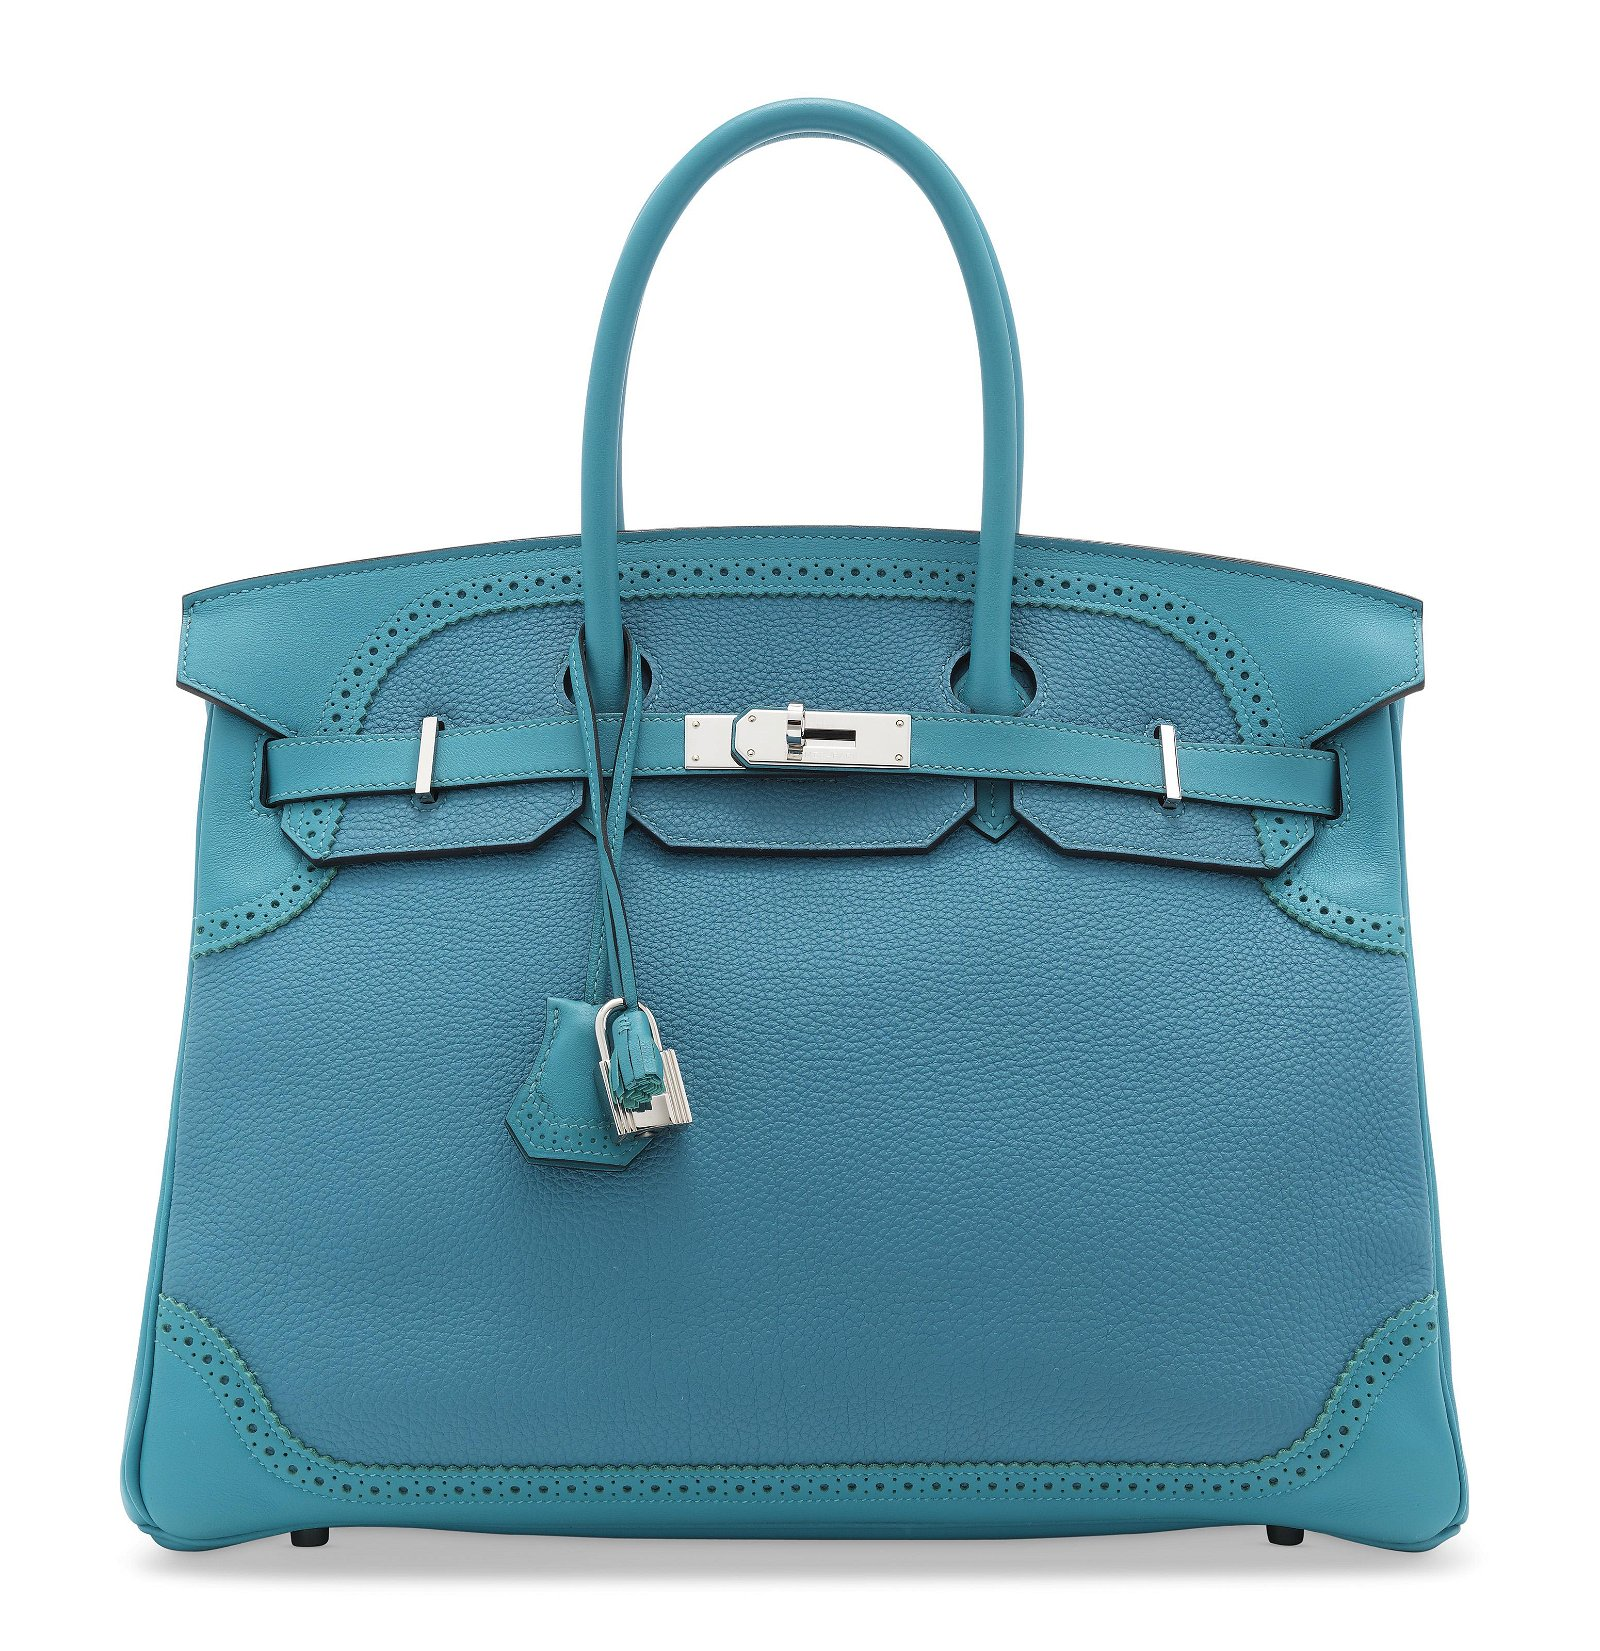 A LIMITED EDITION TURQUOISE TOGO & EVERGRAIN LEATHER